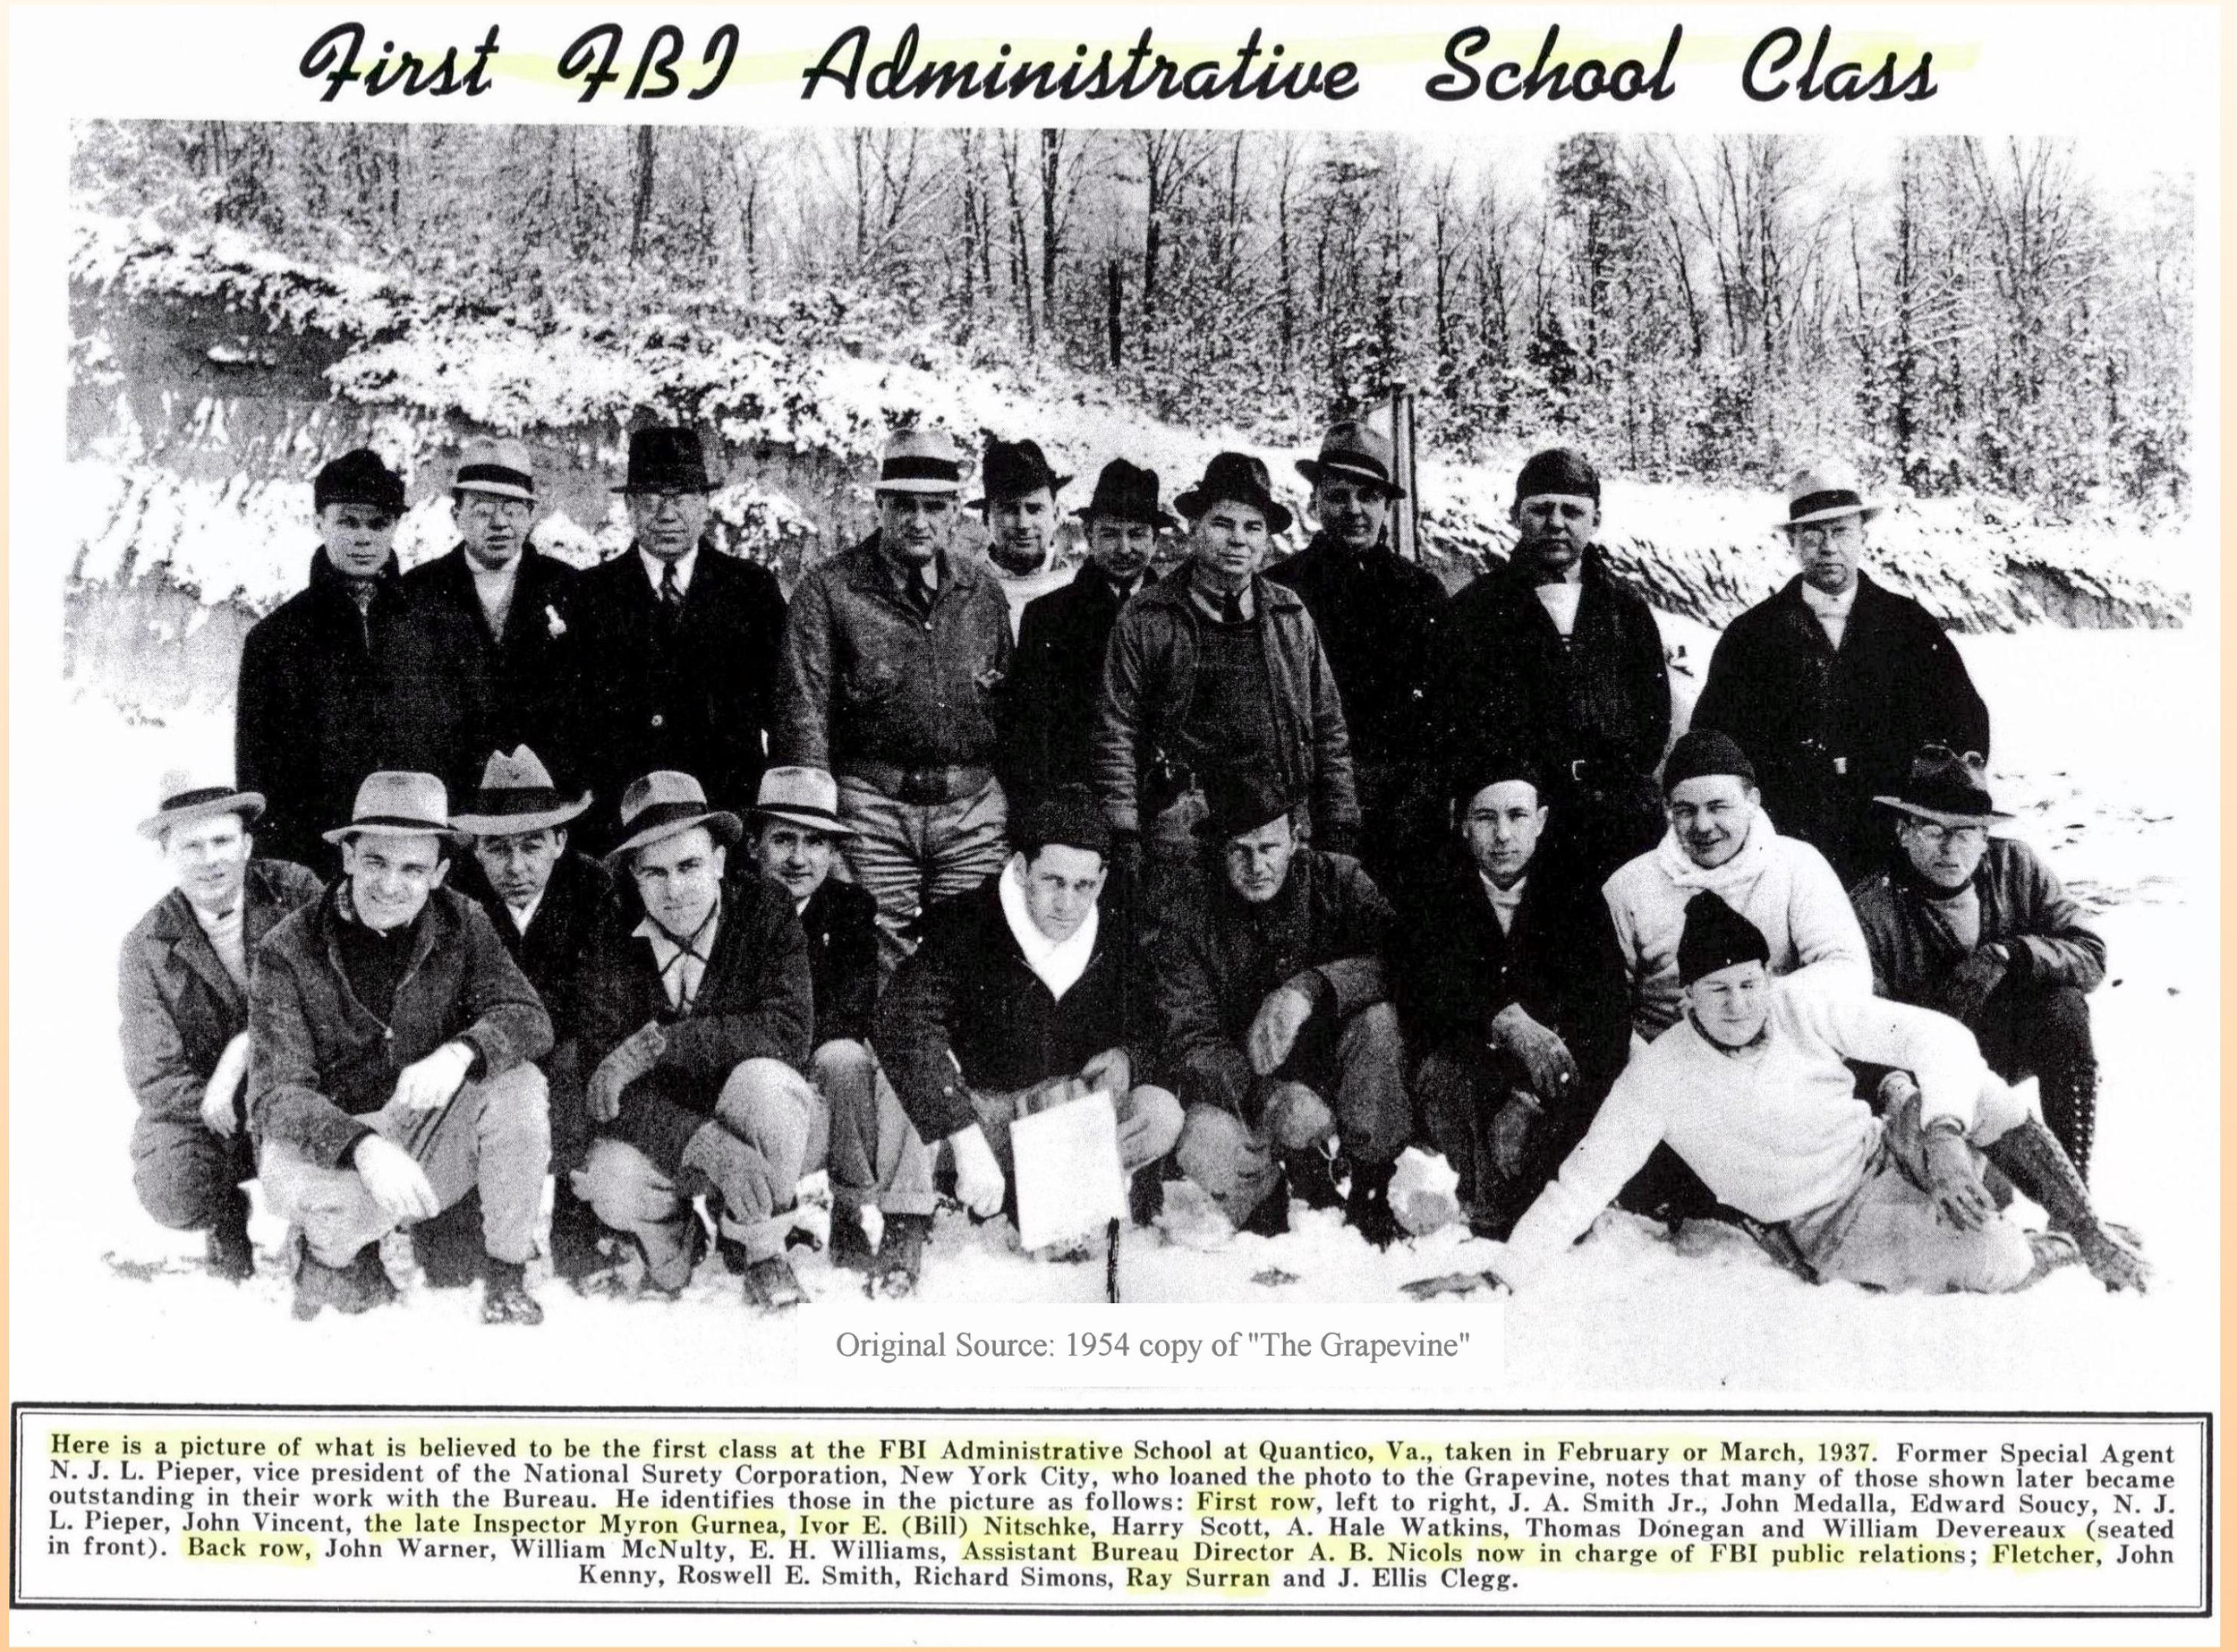 "First Known FBI Administrative Class - 1937    The first known class of 1930s Special Agents for administrative training. Not a clear picture but believed to be the first Administrative School at Quantico, Va. in 1937: First row (L to R): J. A. Smith Jr; John Madala; Edward Soucy; N. J. L. Pieper; John Vincent; the late Inspector, Myron Gurnea; Ivor E. (Bill) Nitschke; Harry Scott; A. Hale Watkins; Thomas Donegan; and William Devereaux (seated in front) Back row (L to R): John Warner; William McNulty, E. H. Williams, Assistant Director A. B. Nichols; (FNU) Fletcher; John Kenny; Roswell E. Smith, Richard Simons; Ray Surran; and J. Ellis Clegg. Identifications were made upon loan of the photo to the FBI by SA Pieper after retirement. The term FNU means ""first name unknown."""